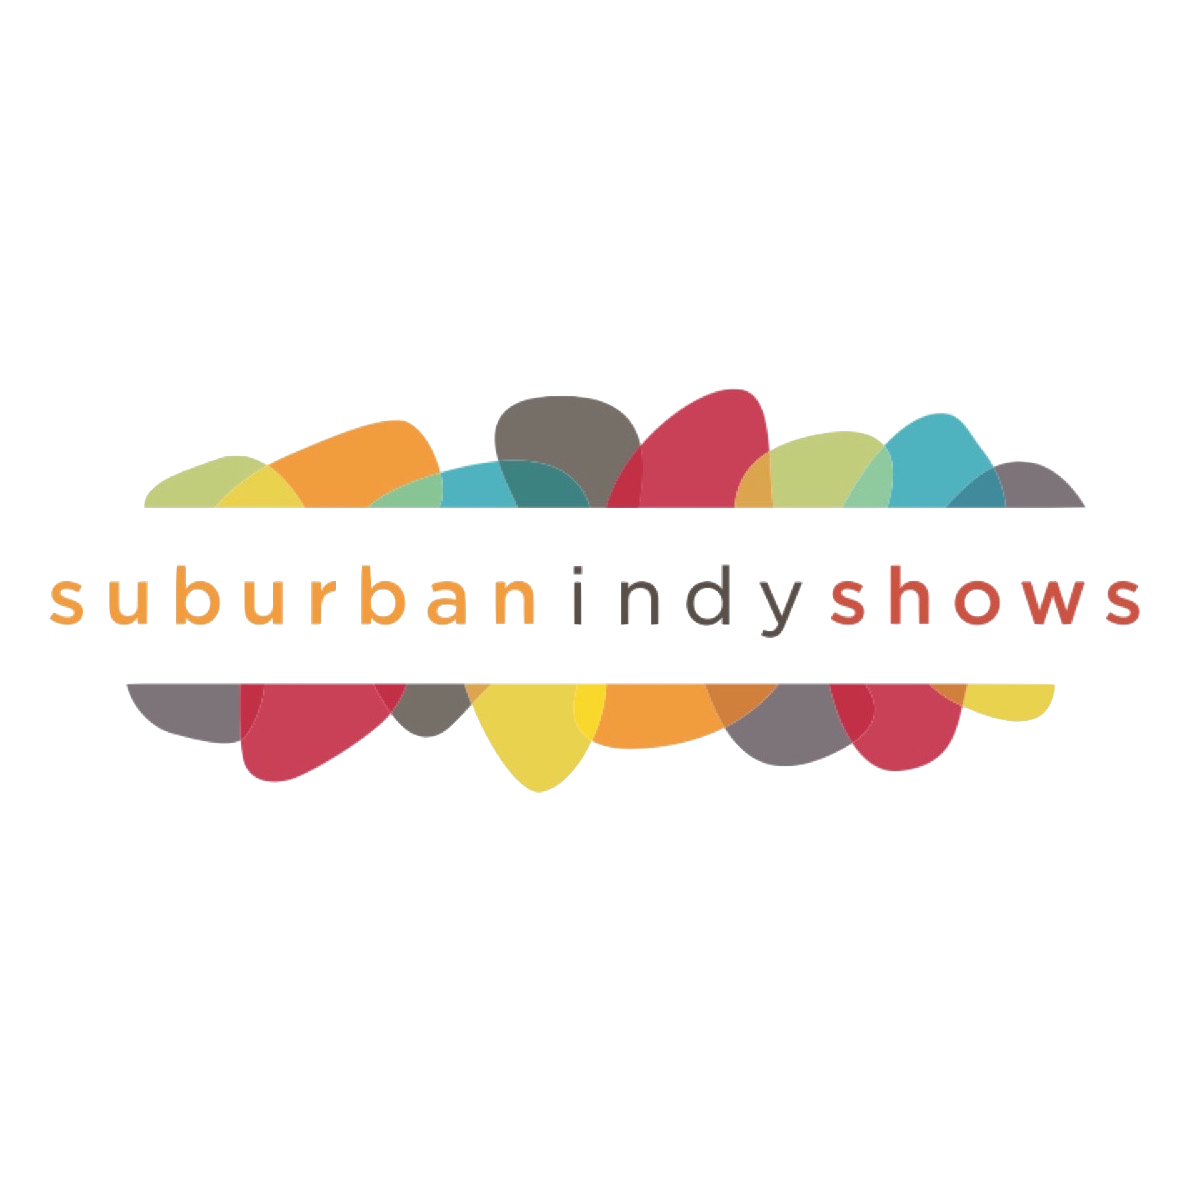 Suburban Indy Shows   Home Page   Suburban Indy Shows